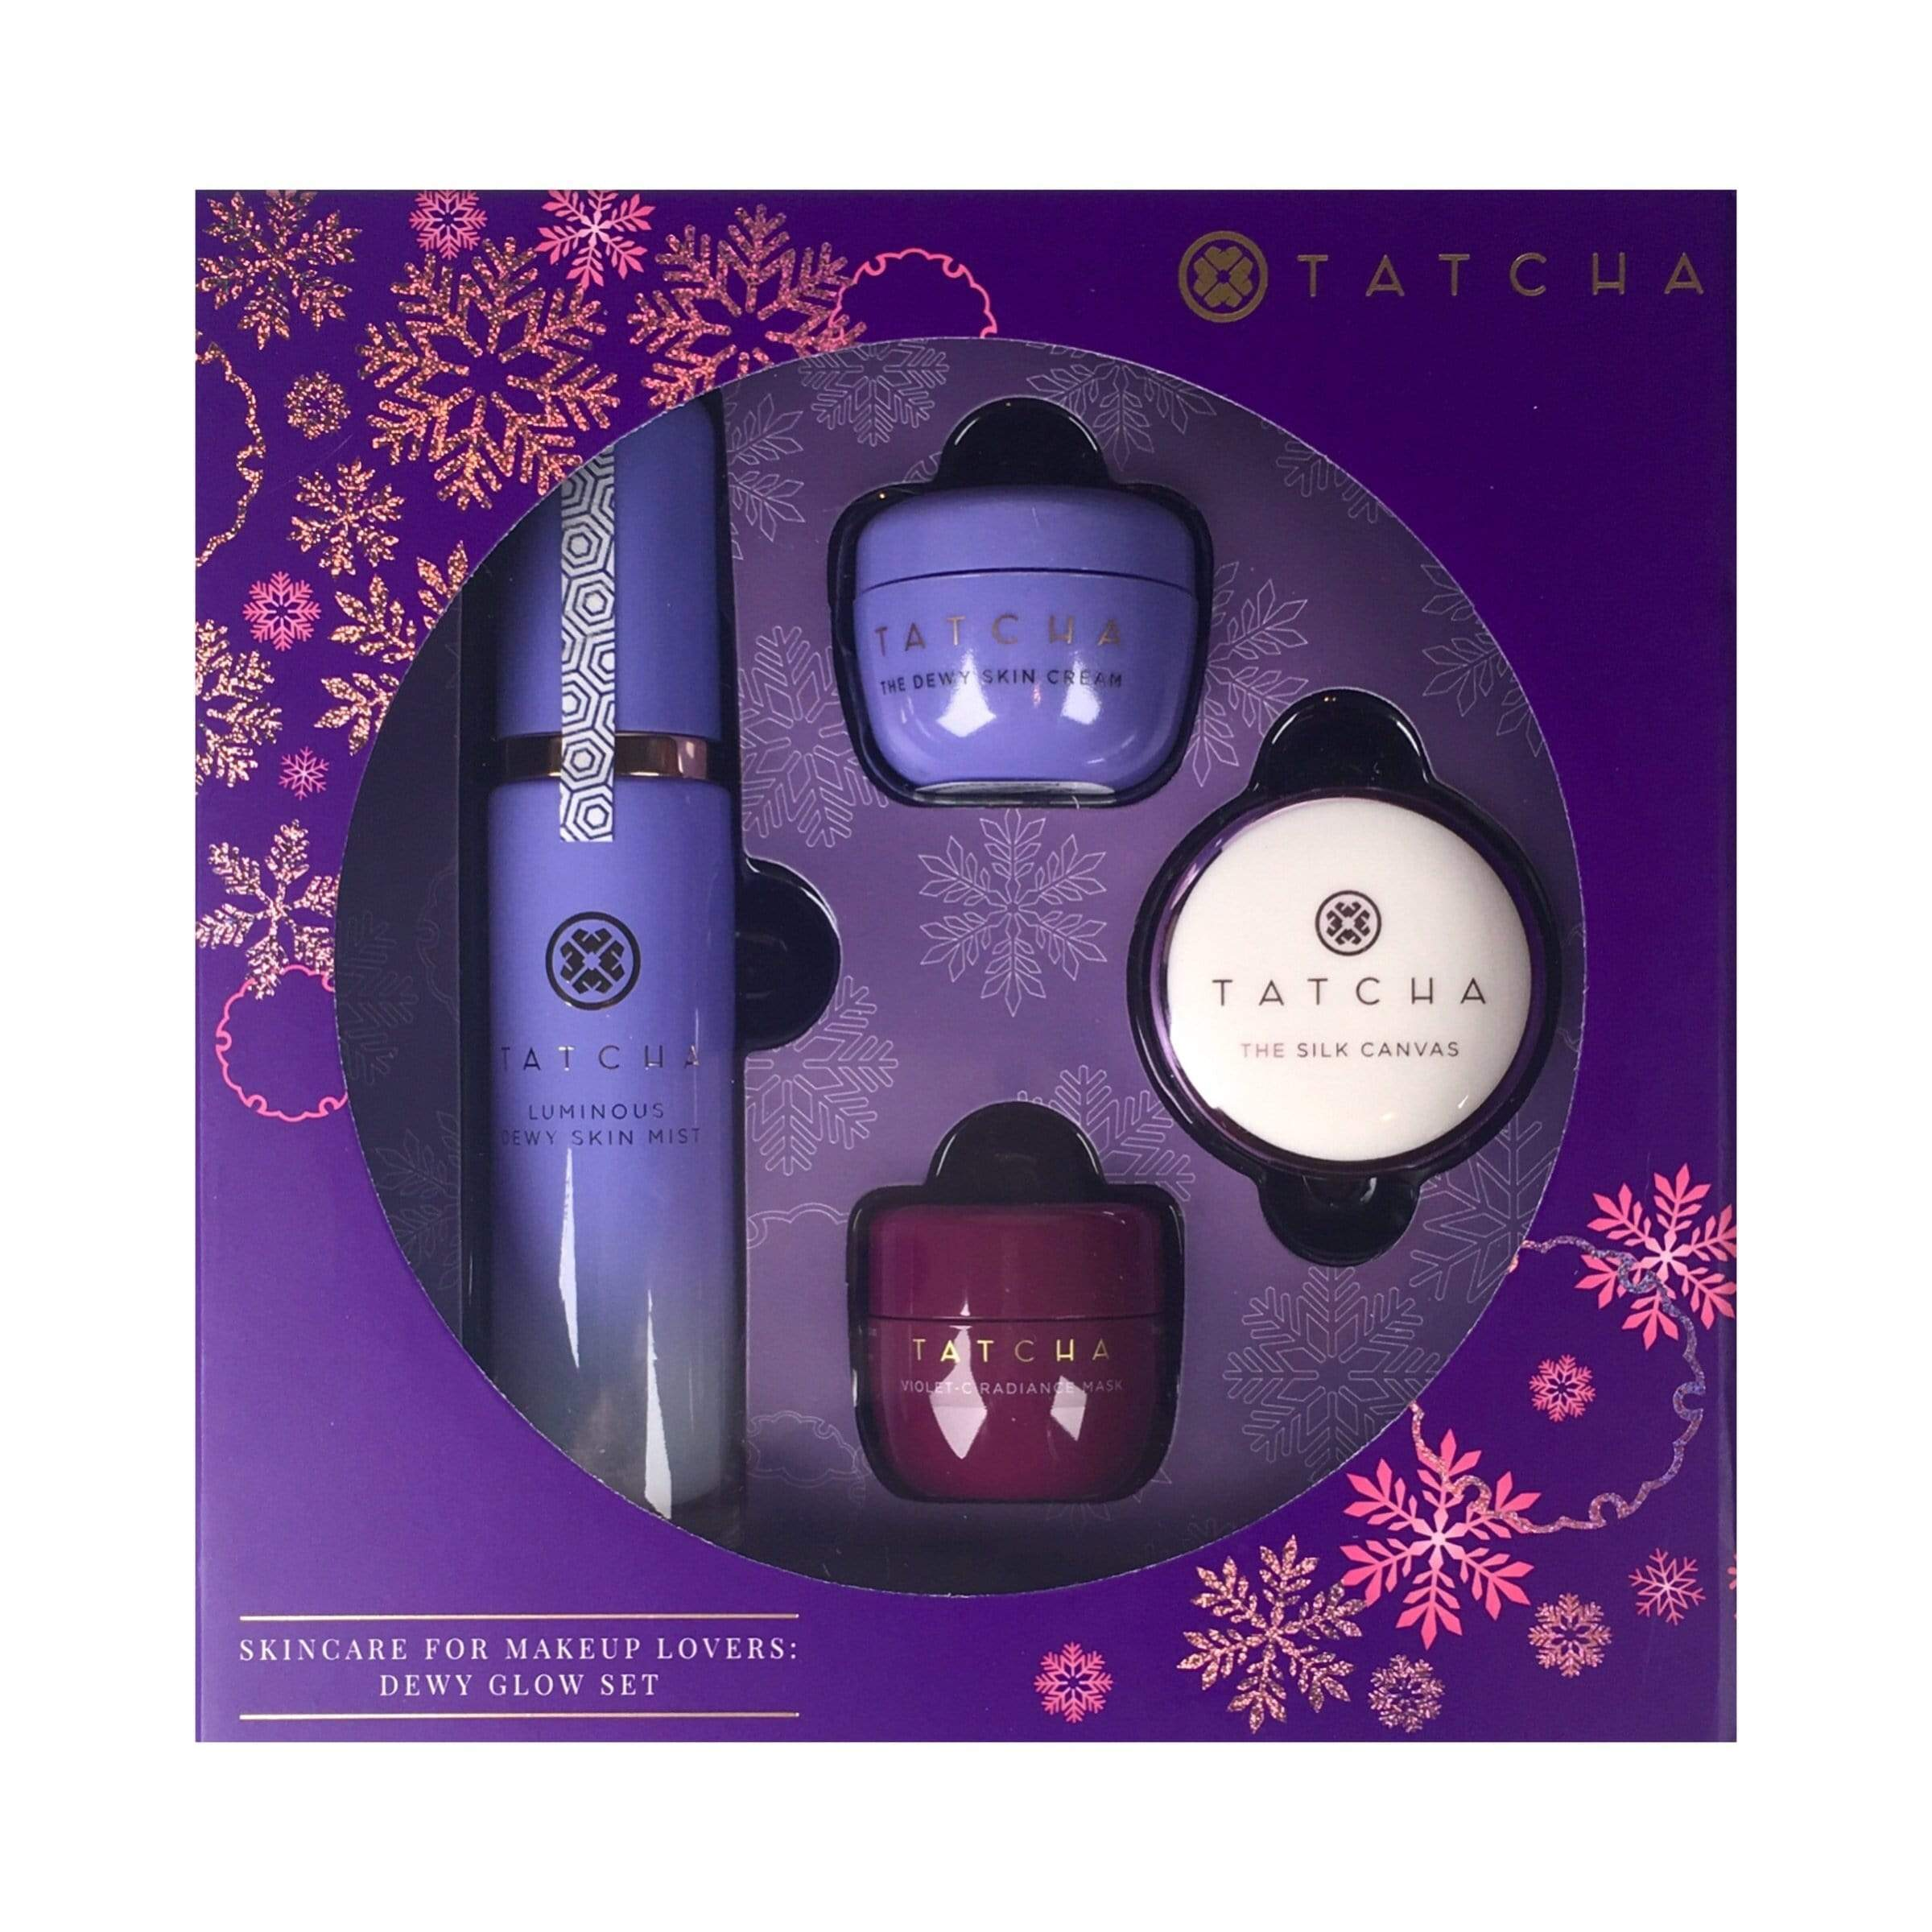 Tatcha Skincare For Makeup Lovers Dewy Glow Set Limited Edition London Loves Beauty